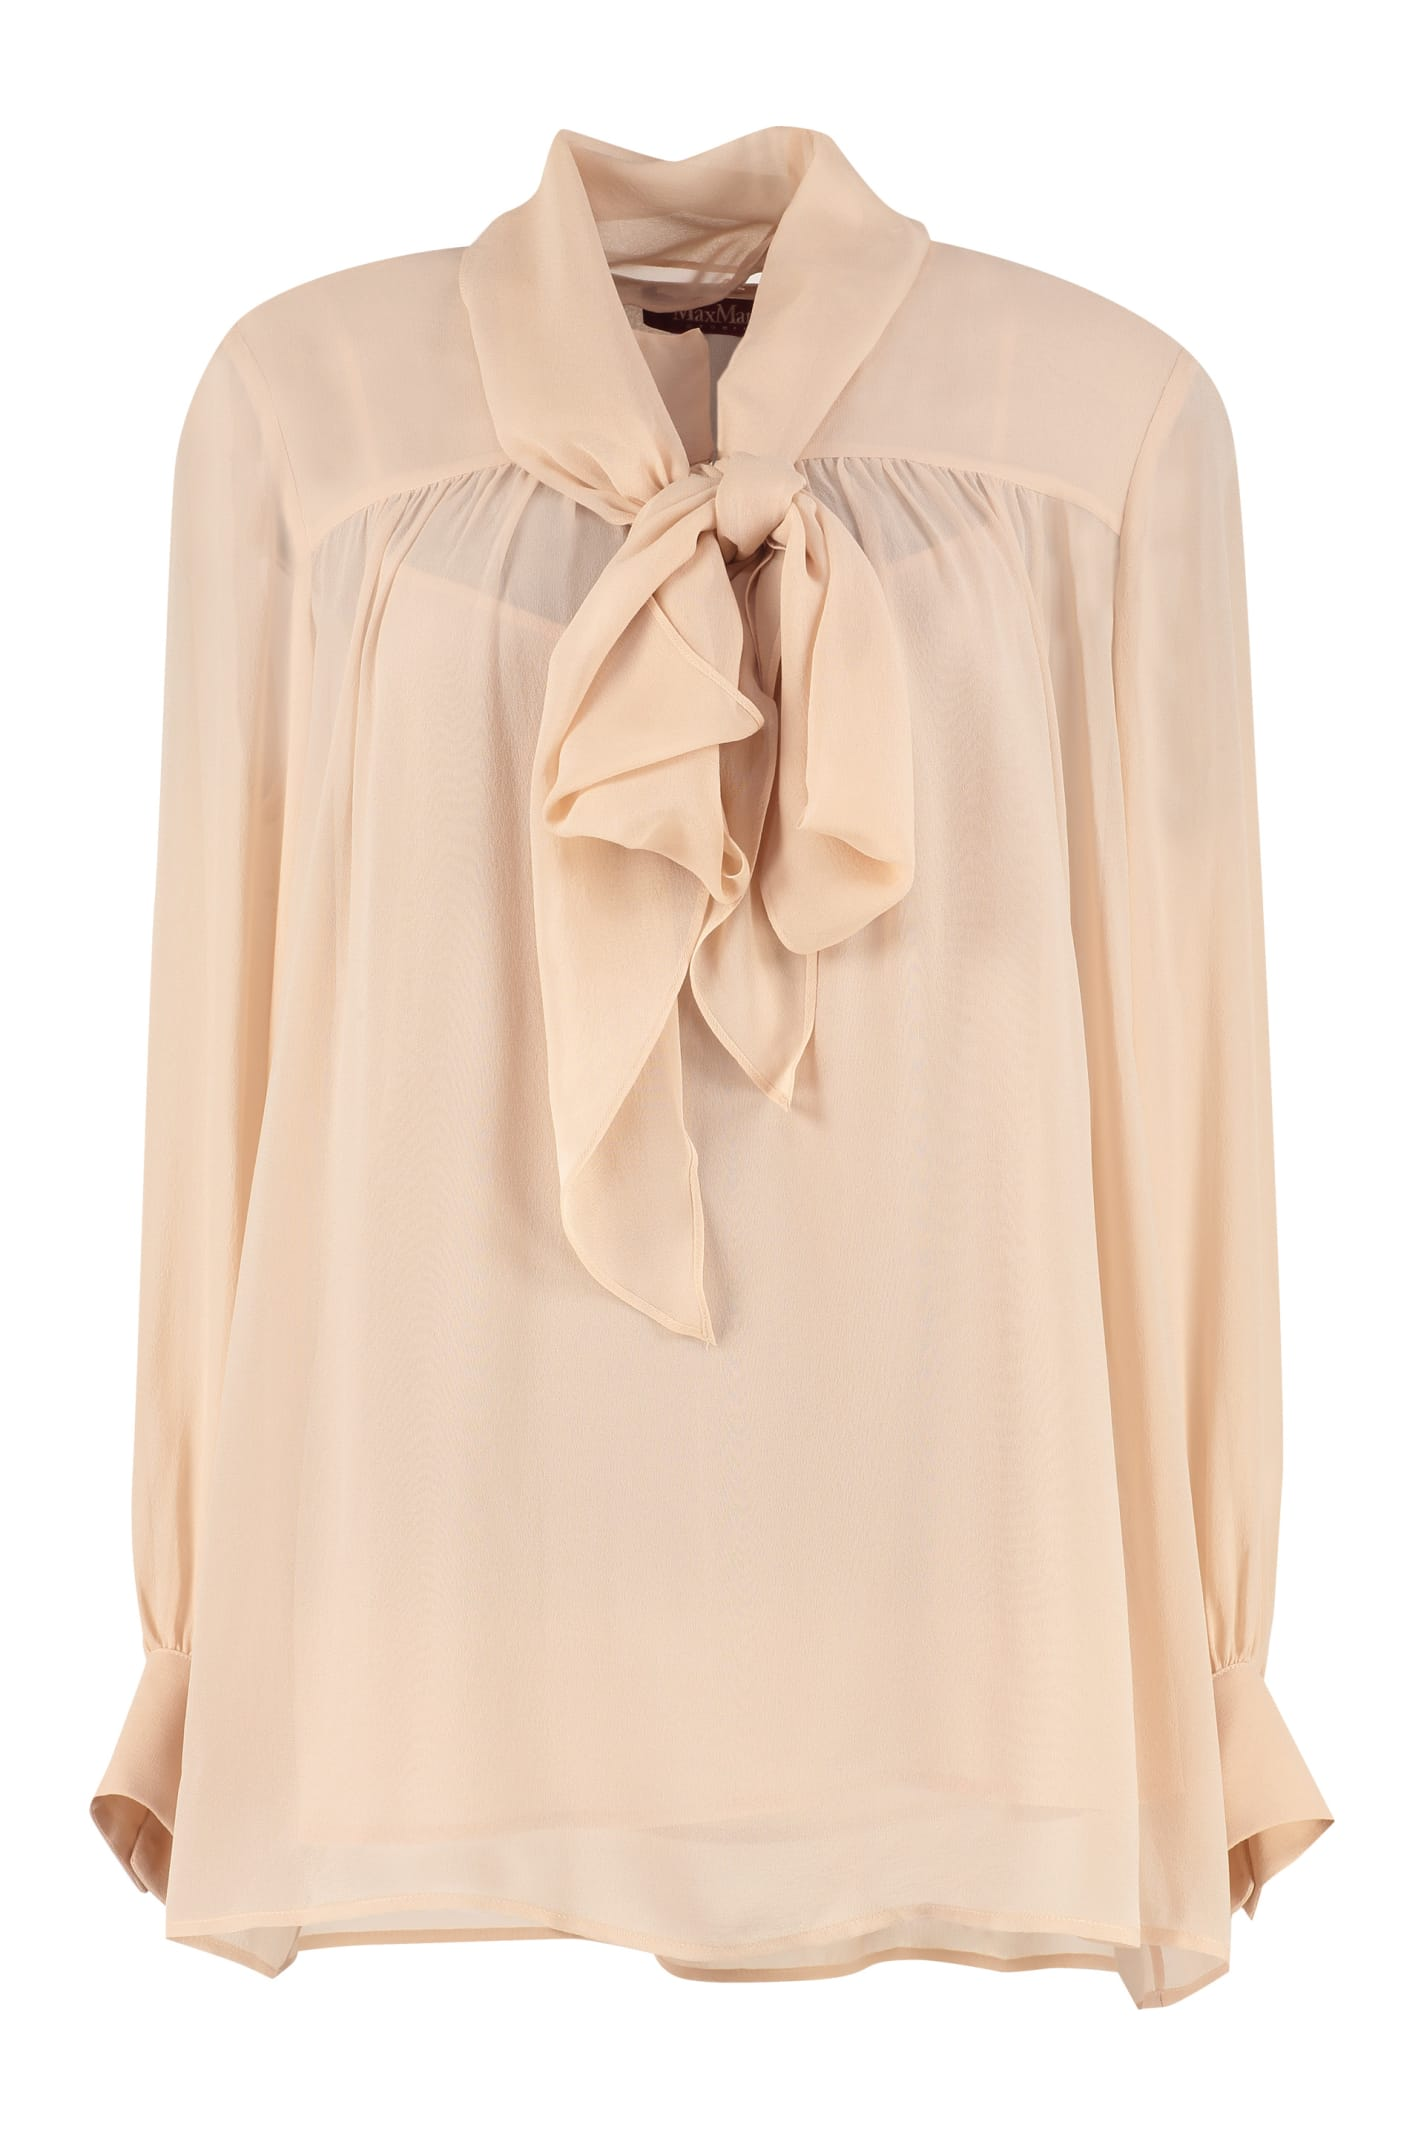 Max Mara Studio Silk Georgette Blouse